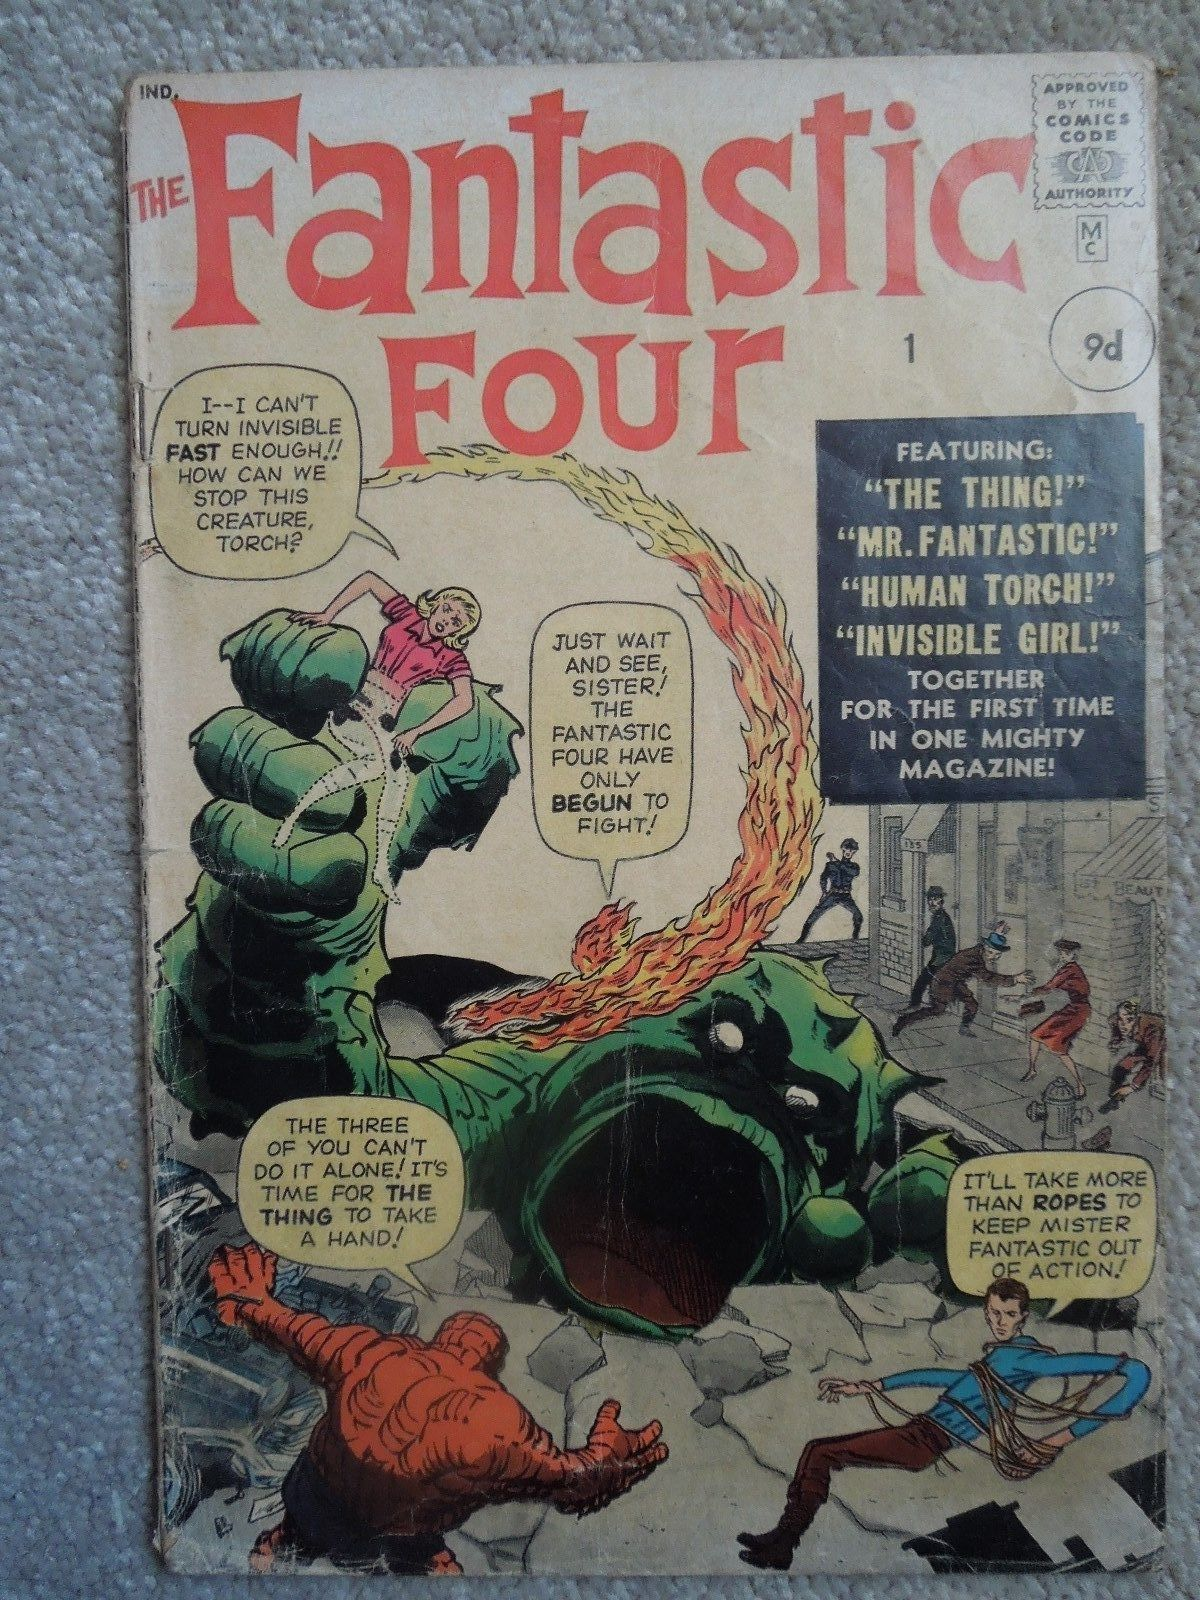 Fantastic Four #1 (Vol One 1961) - 1st appearance of the Fantastic Four